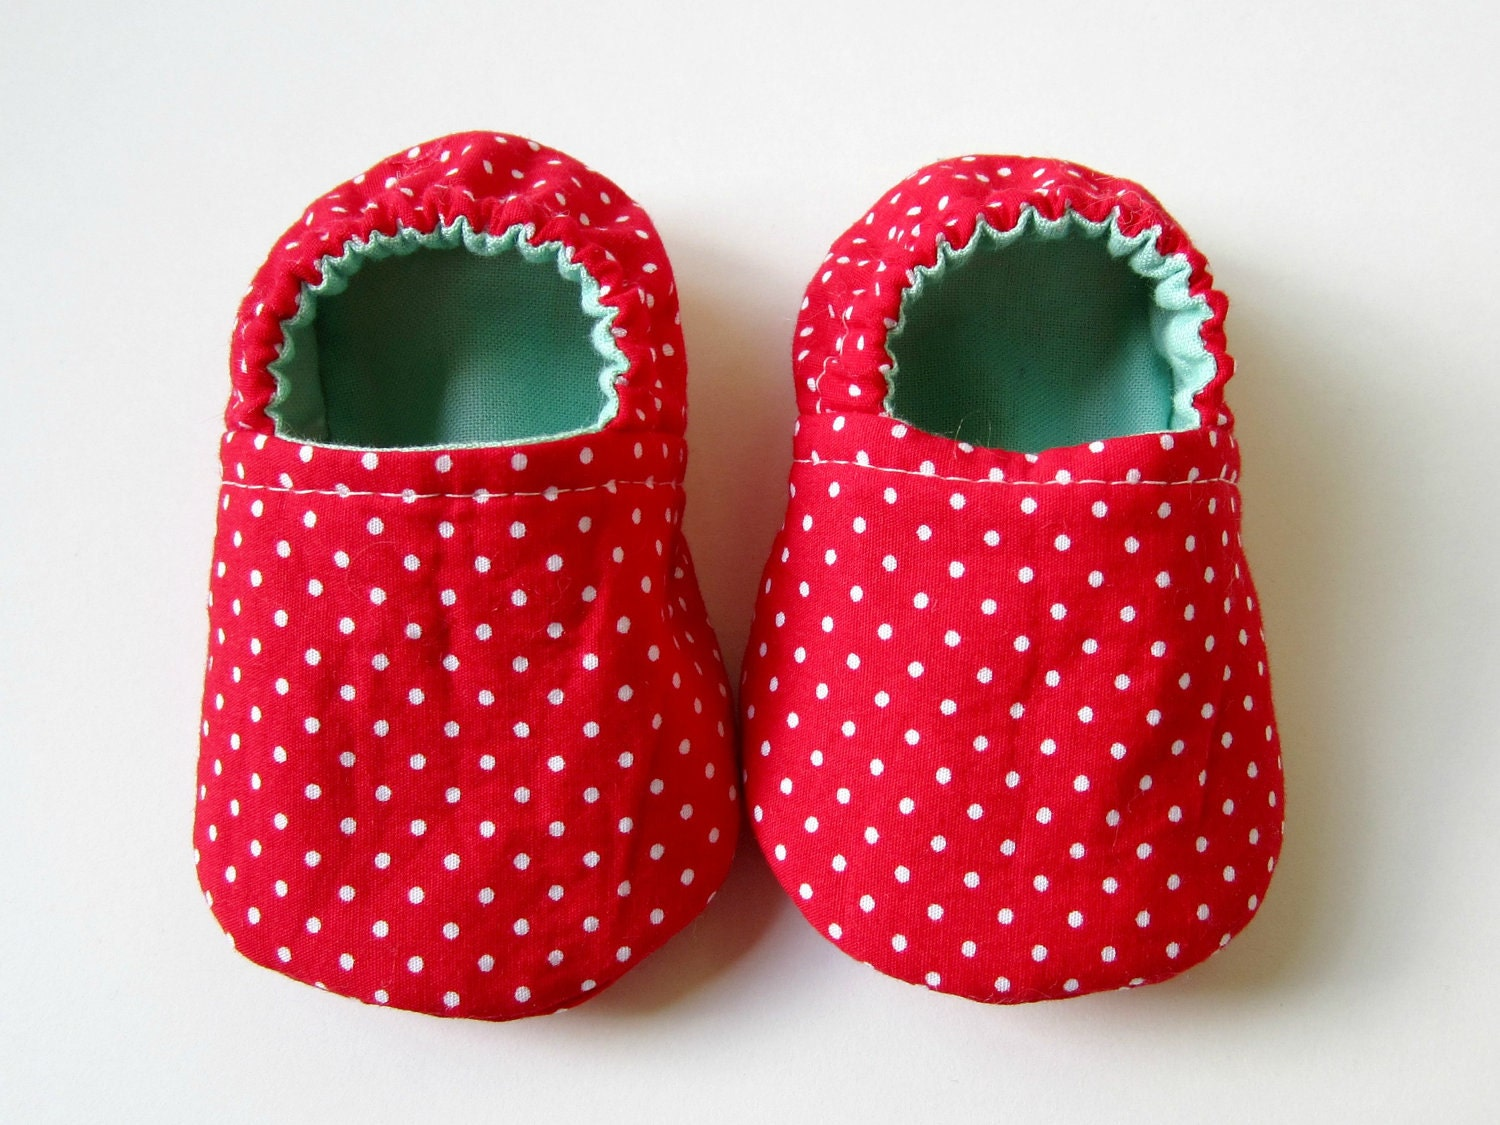 NEW - Reversible Baby Booties in Red, White, and Aqua with Polka Dots - Sizes 1-4